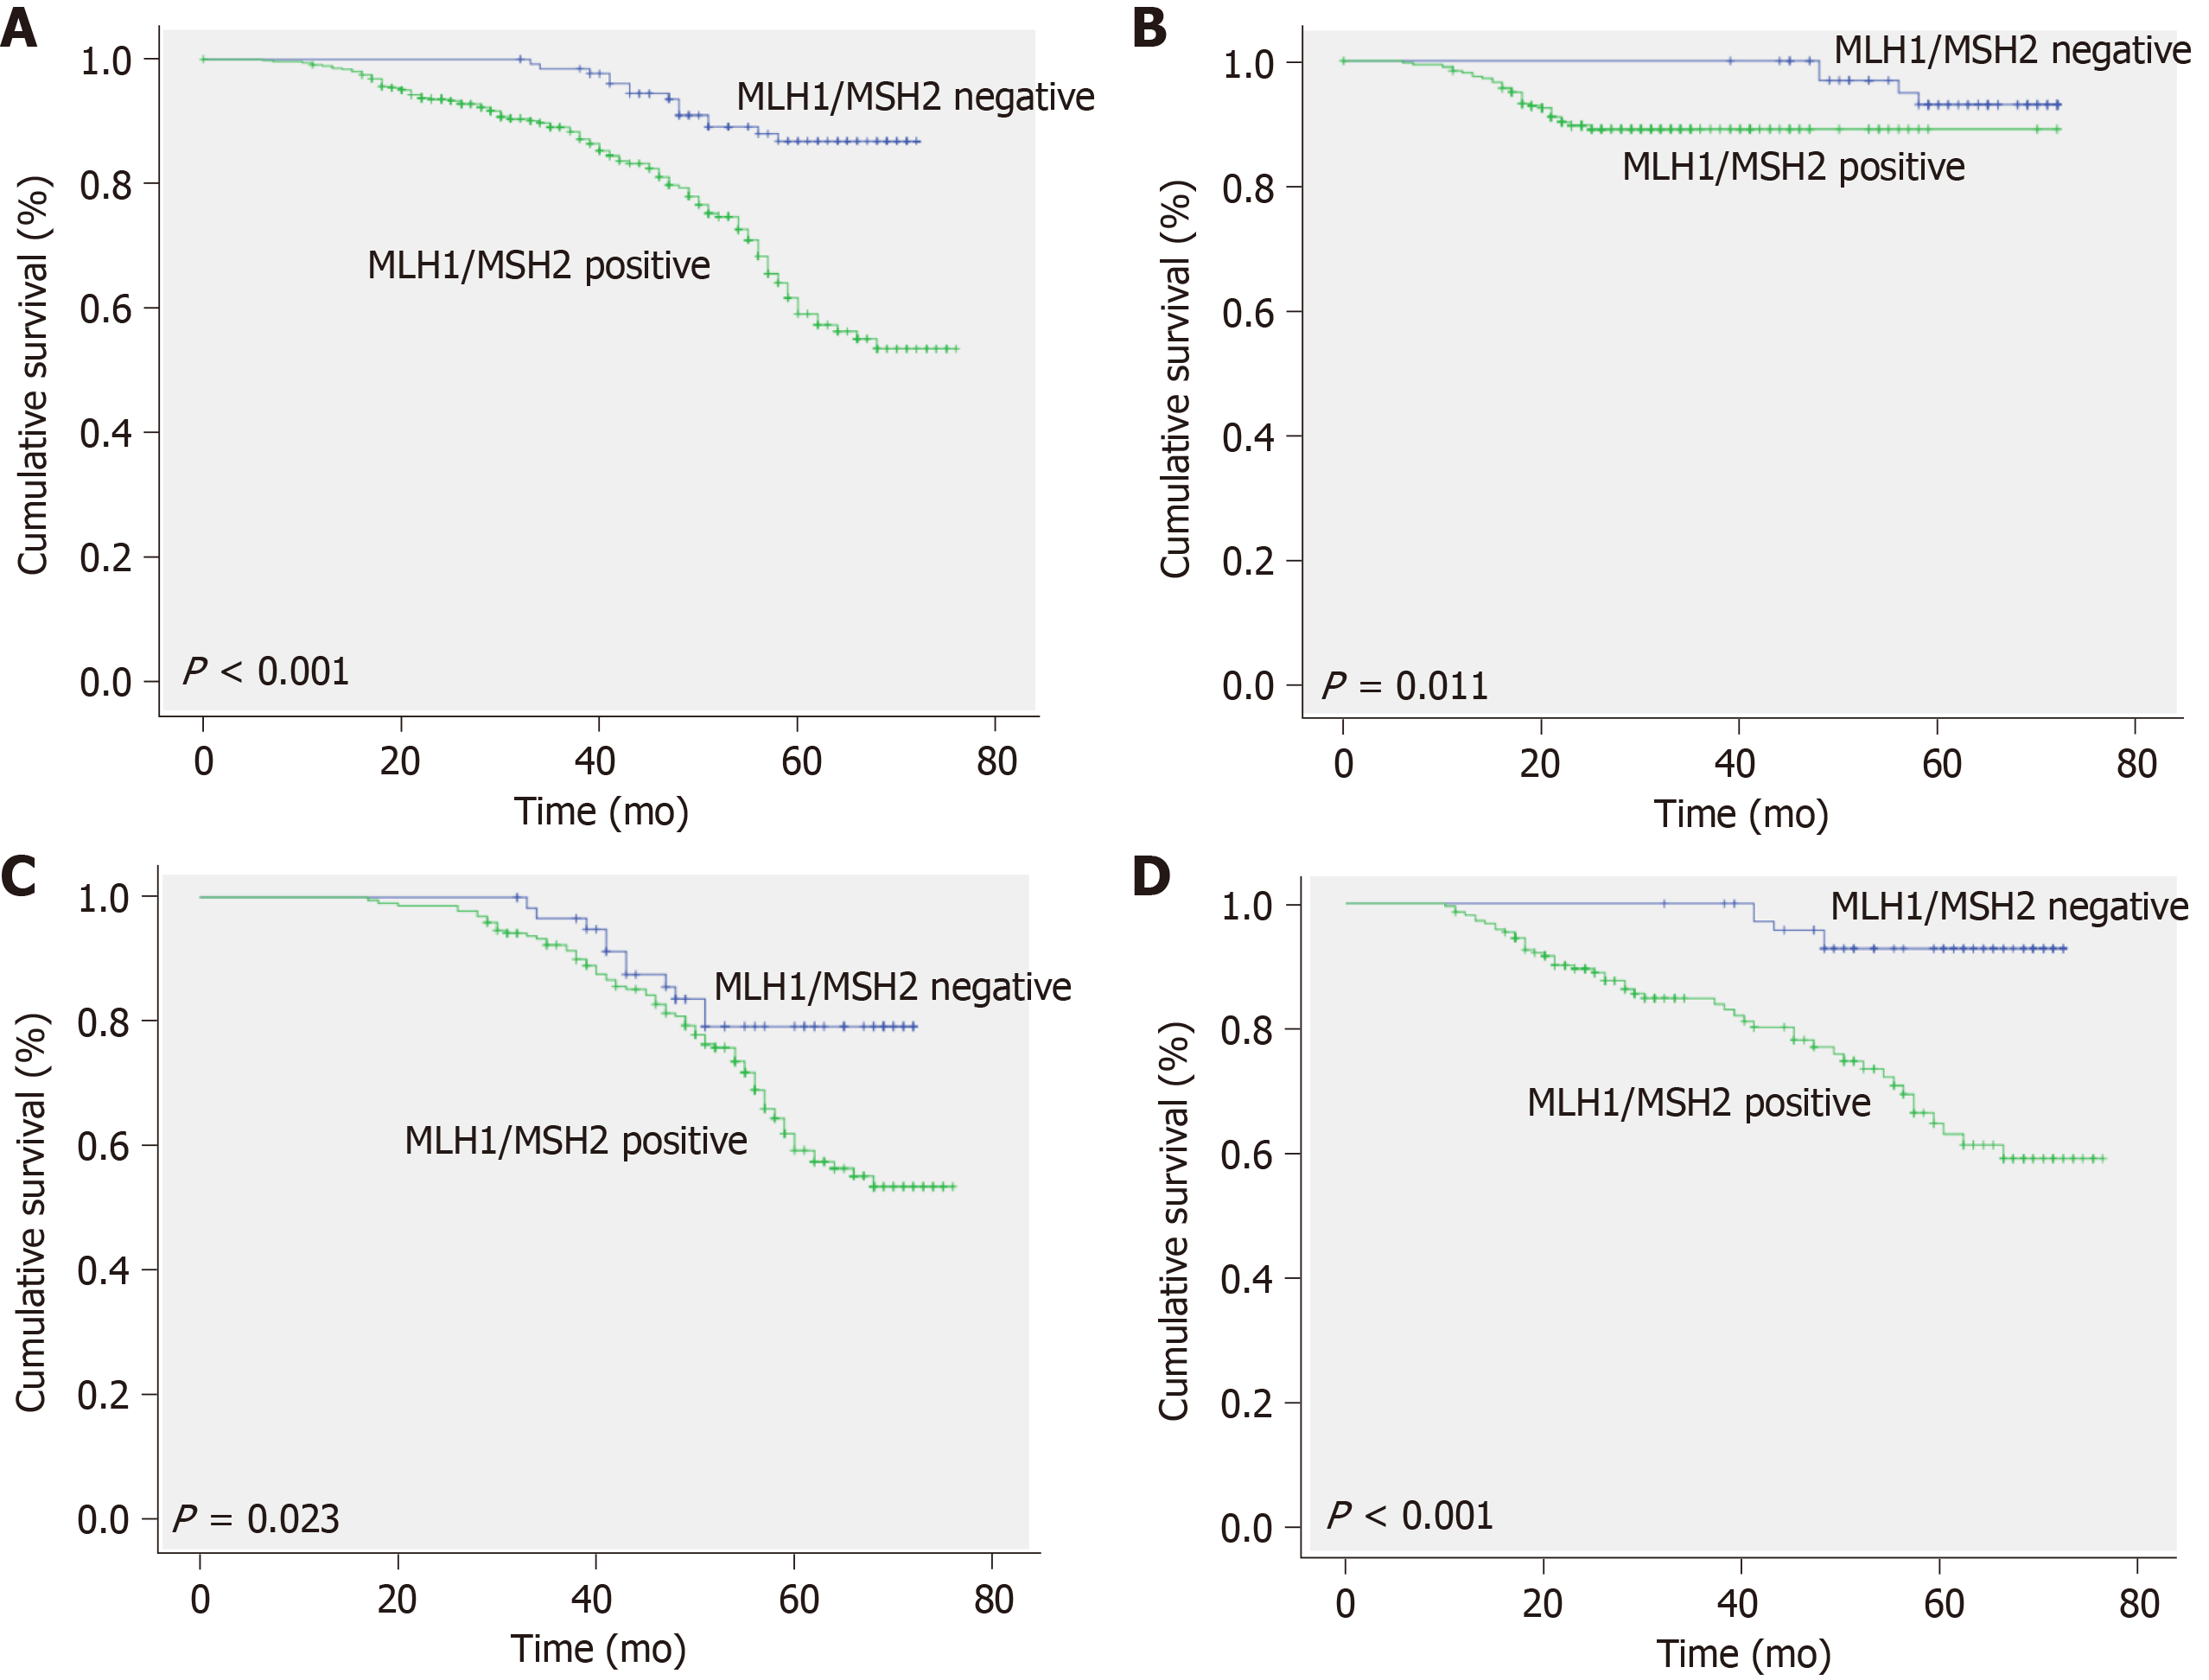 Clinical Significance Of Mlh1 Msh2 For Stage Ii Iii Sporadic Colorectal Cancer